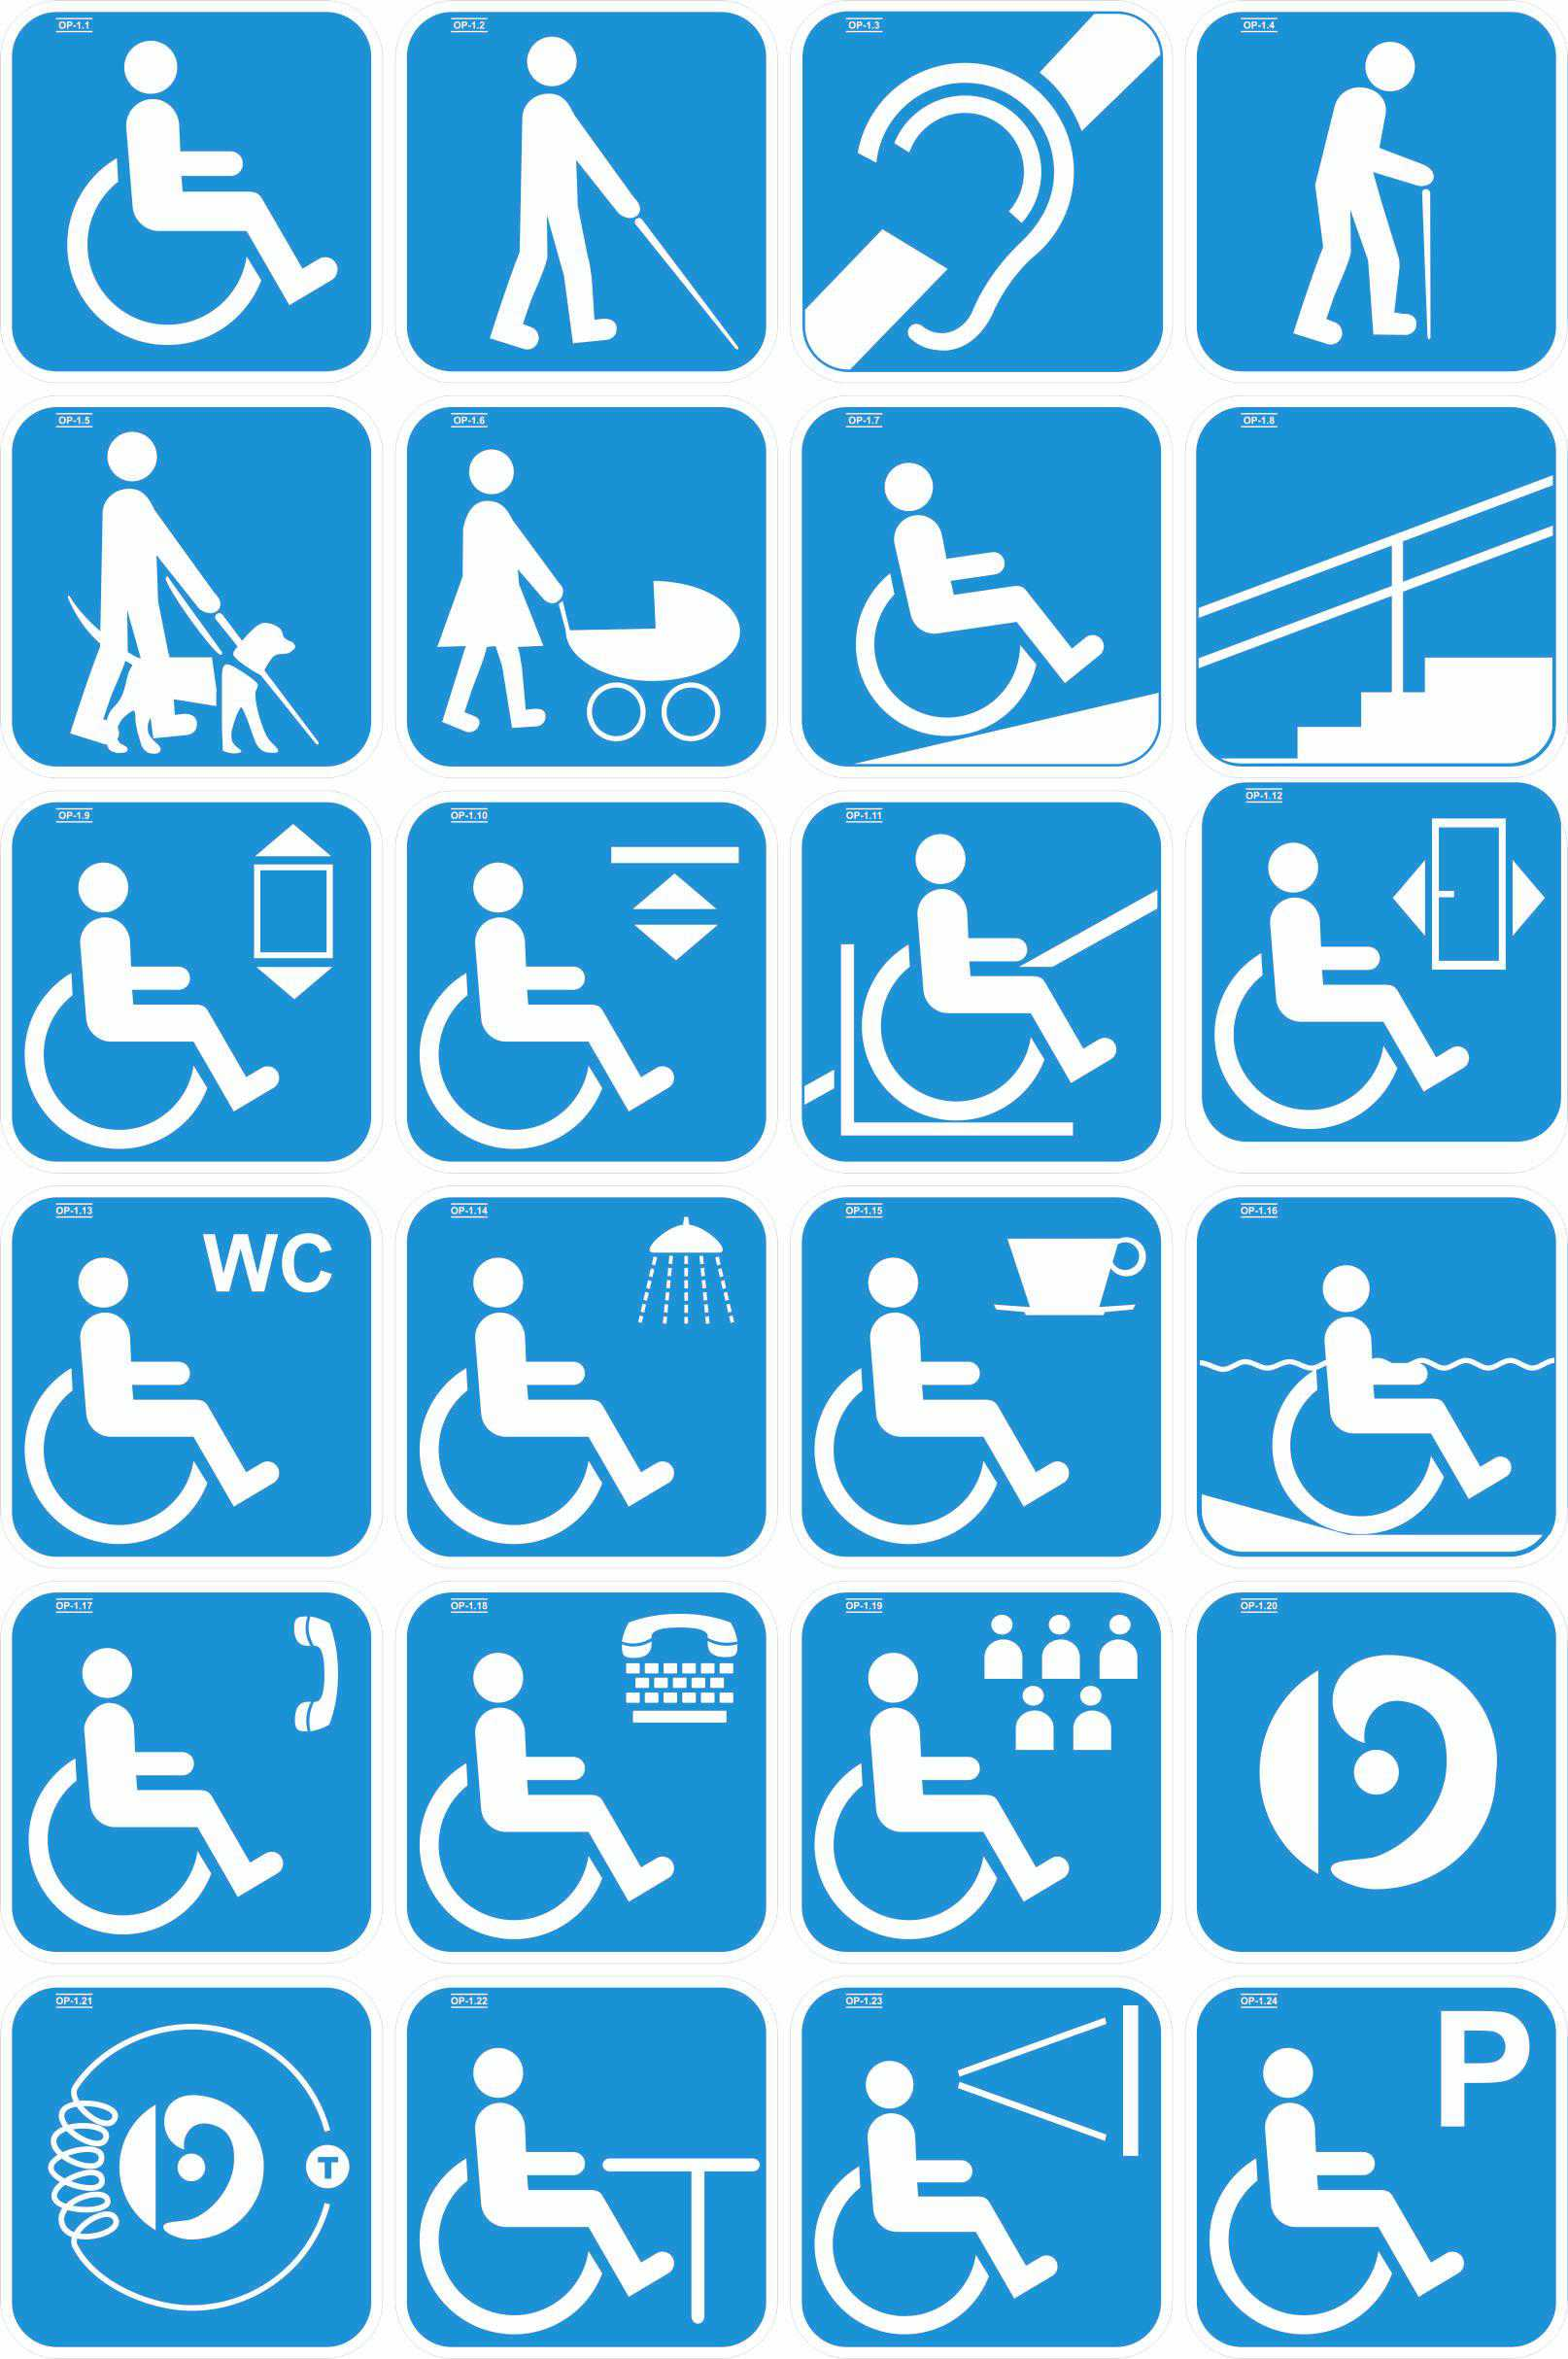 Accessibility signs (2)